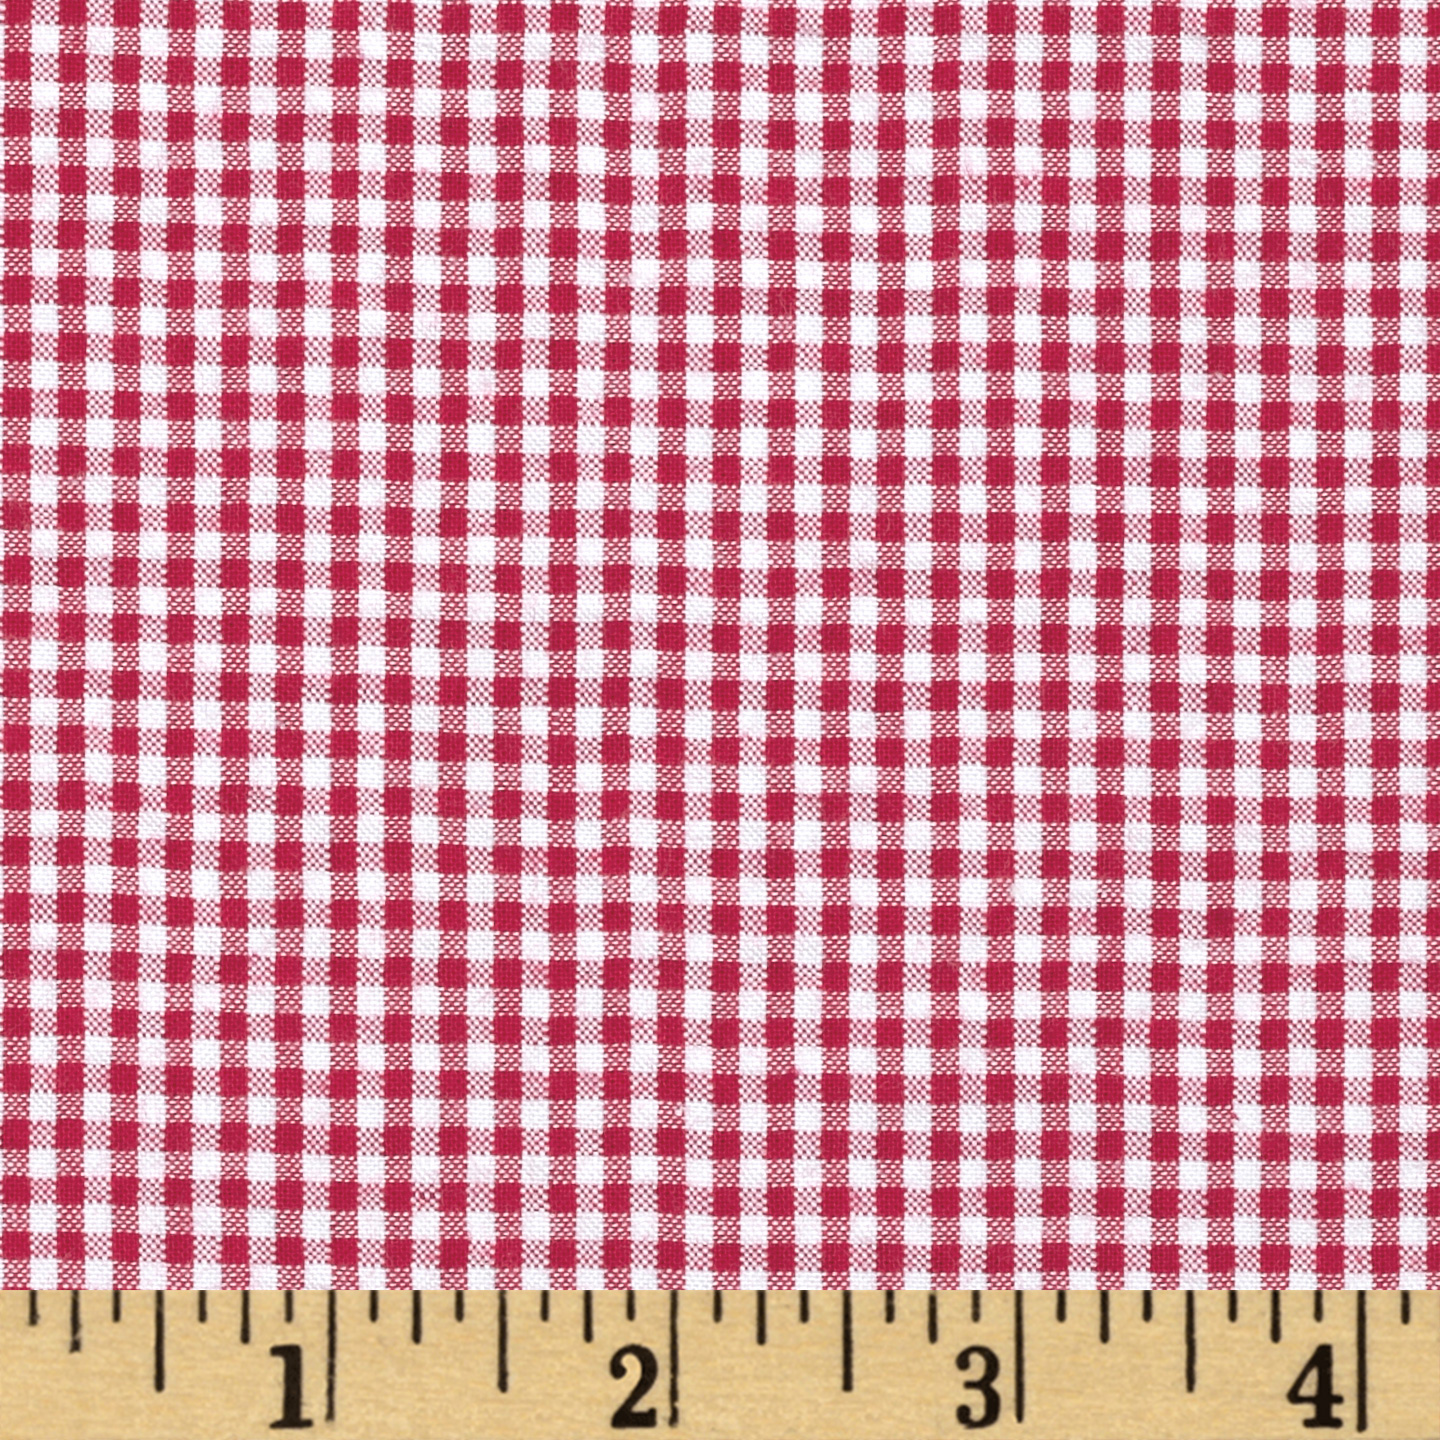 Imperial 60'' Seersucker Gingham Red Fabric by Spechler-Vogel in USA